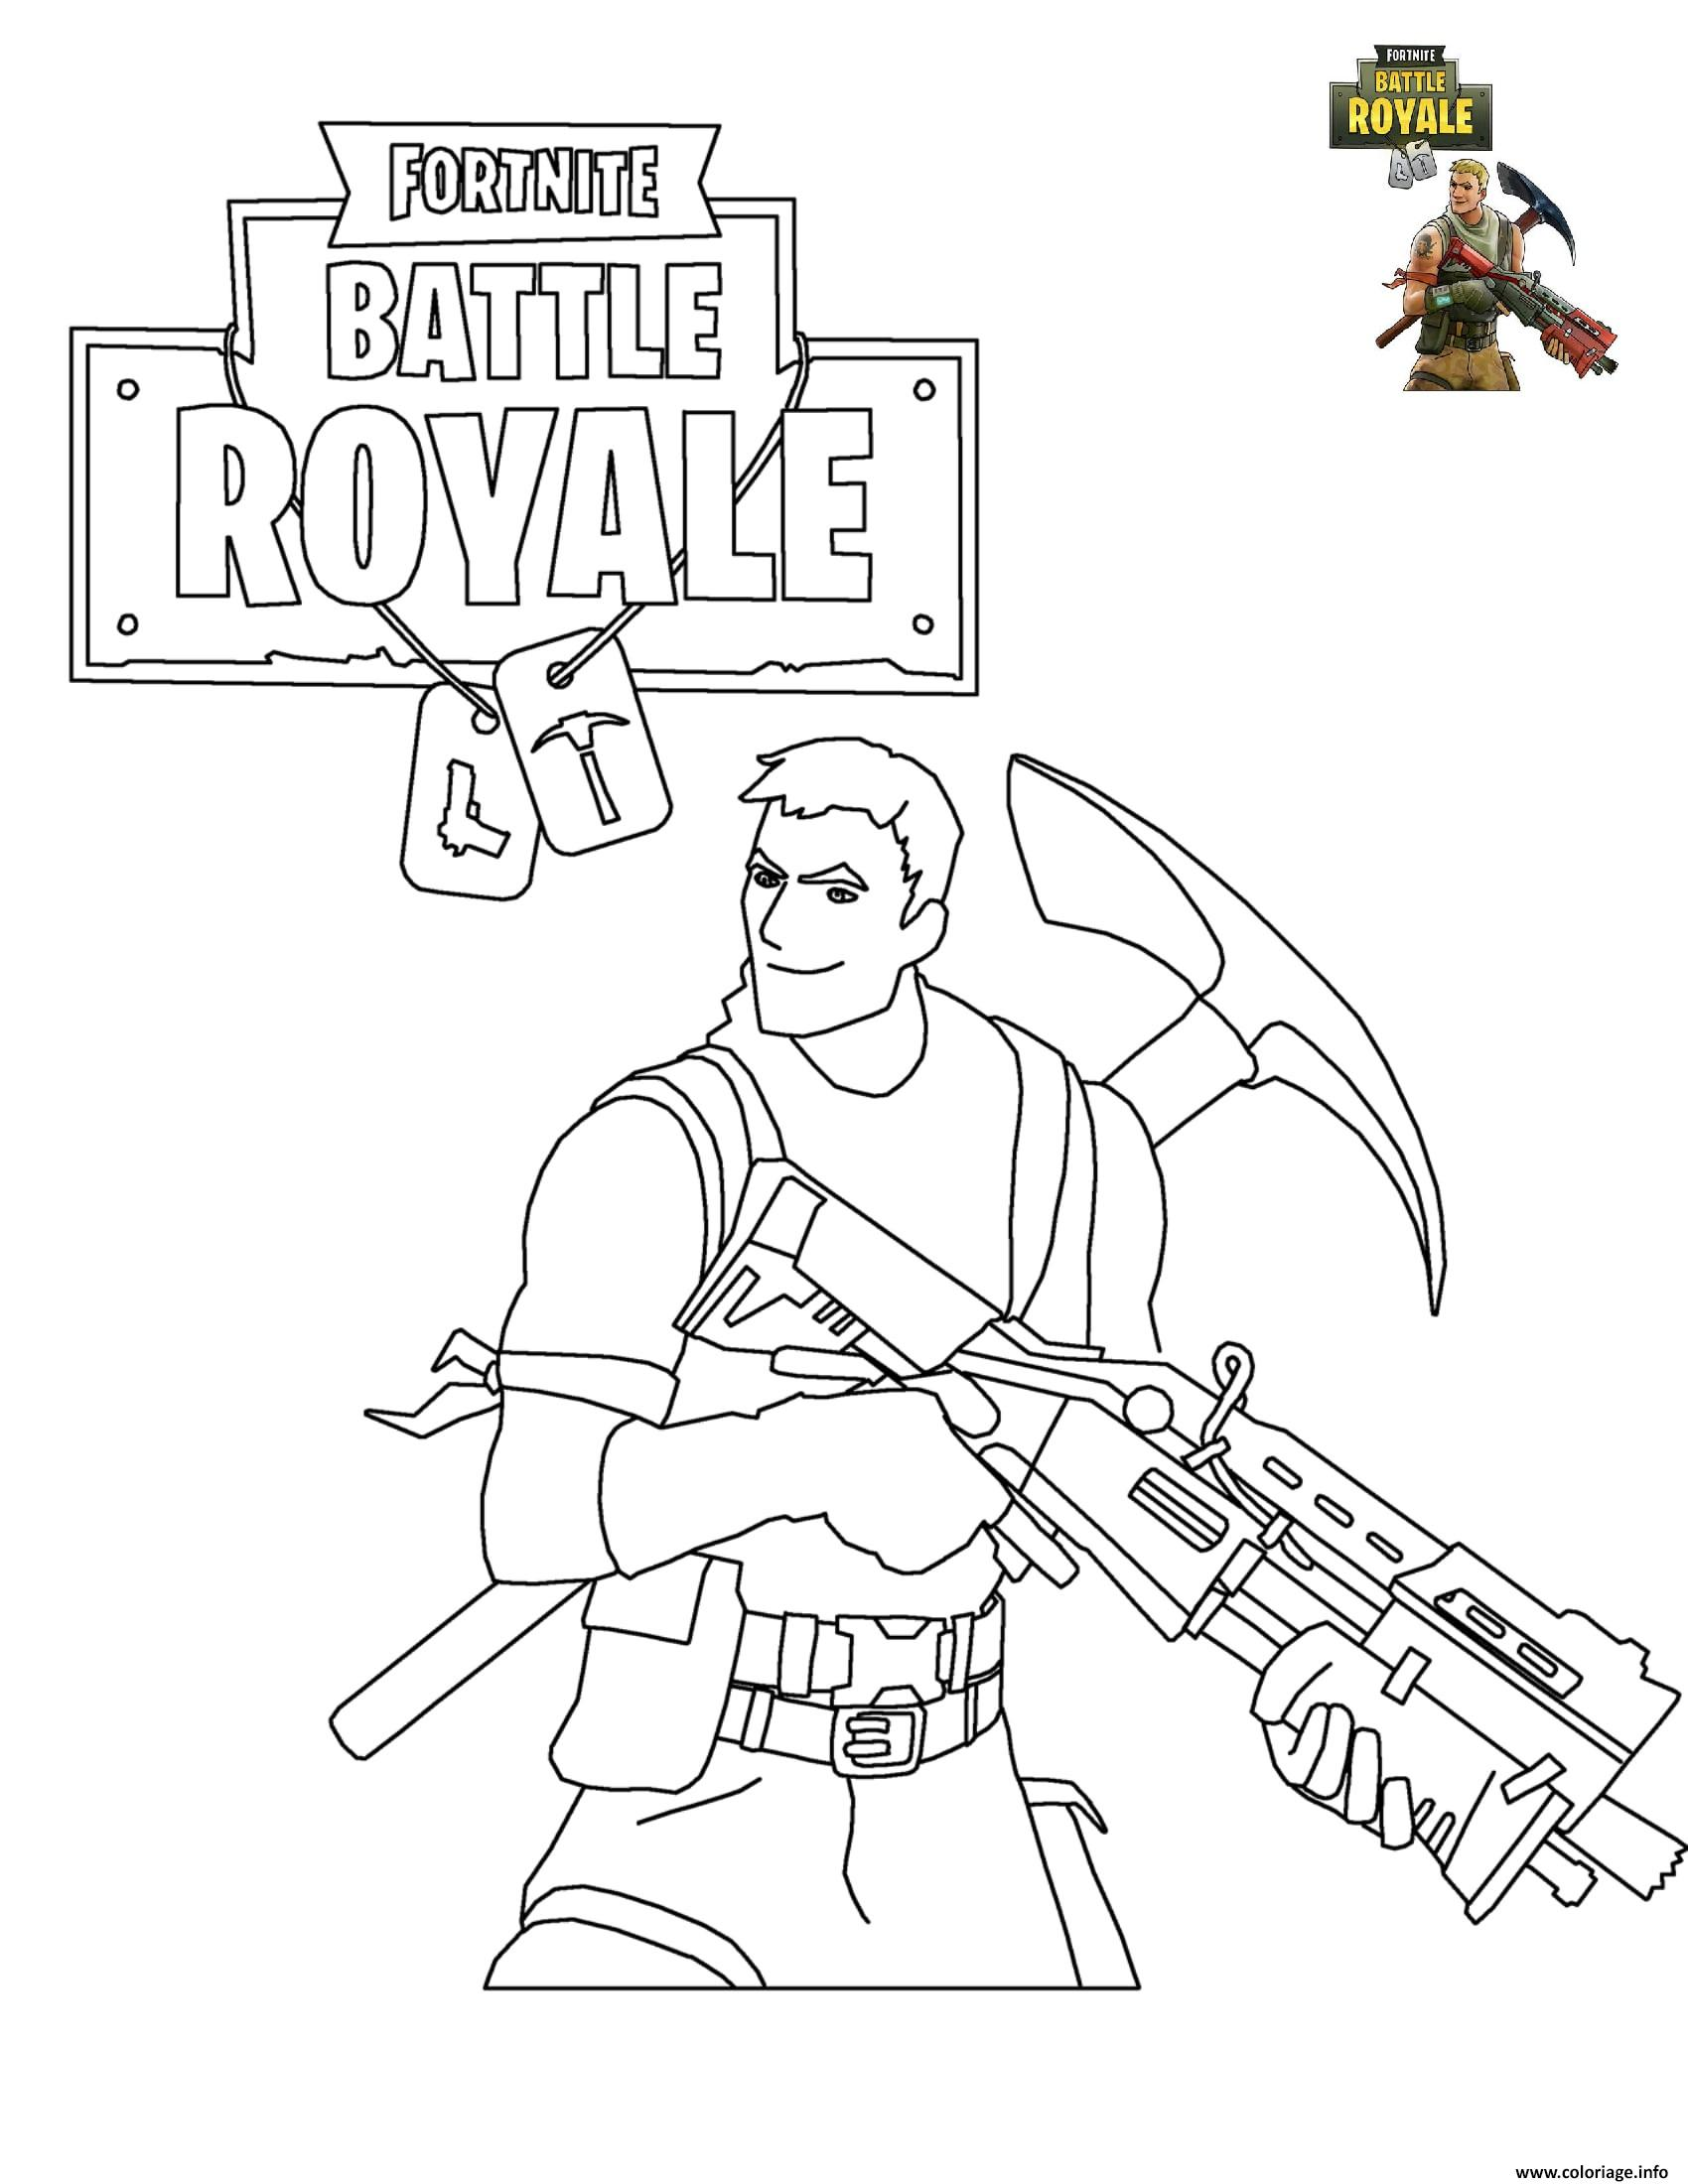 Coloriage A Imprimer Gratuit Fortnite.Coloriage Fortnite Battle Royale Jecolorie Com